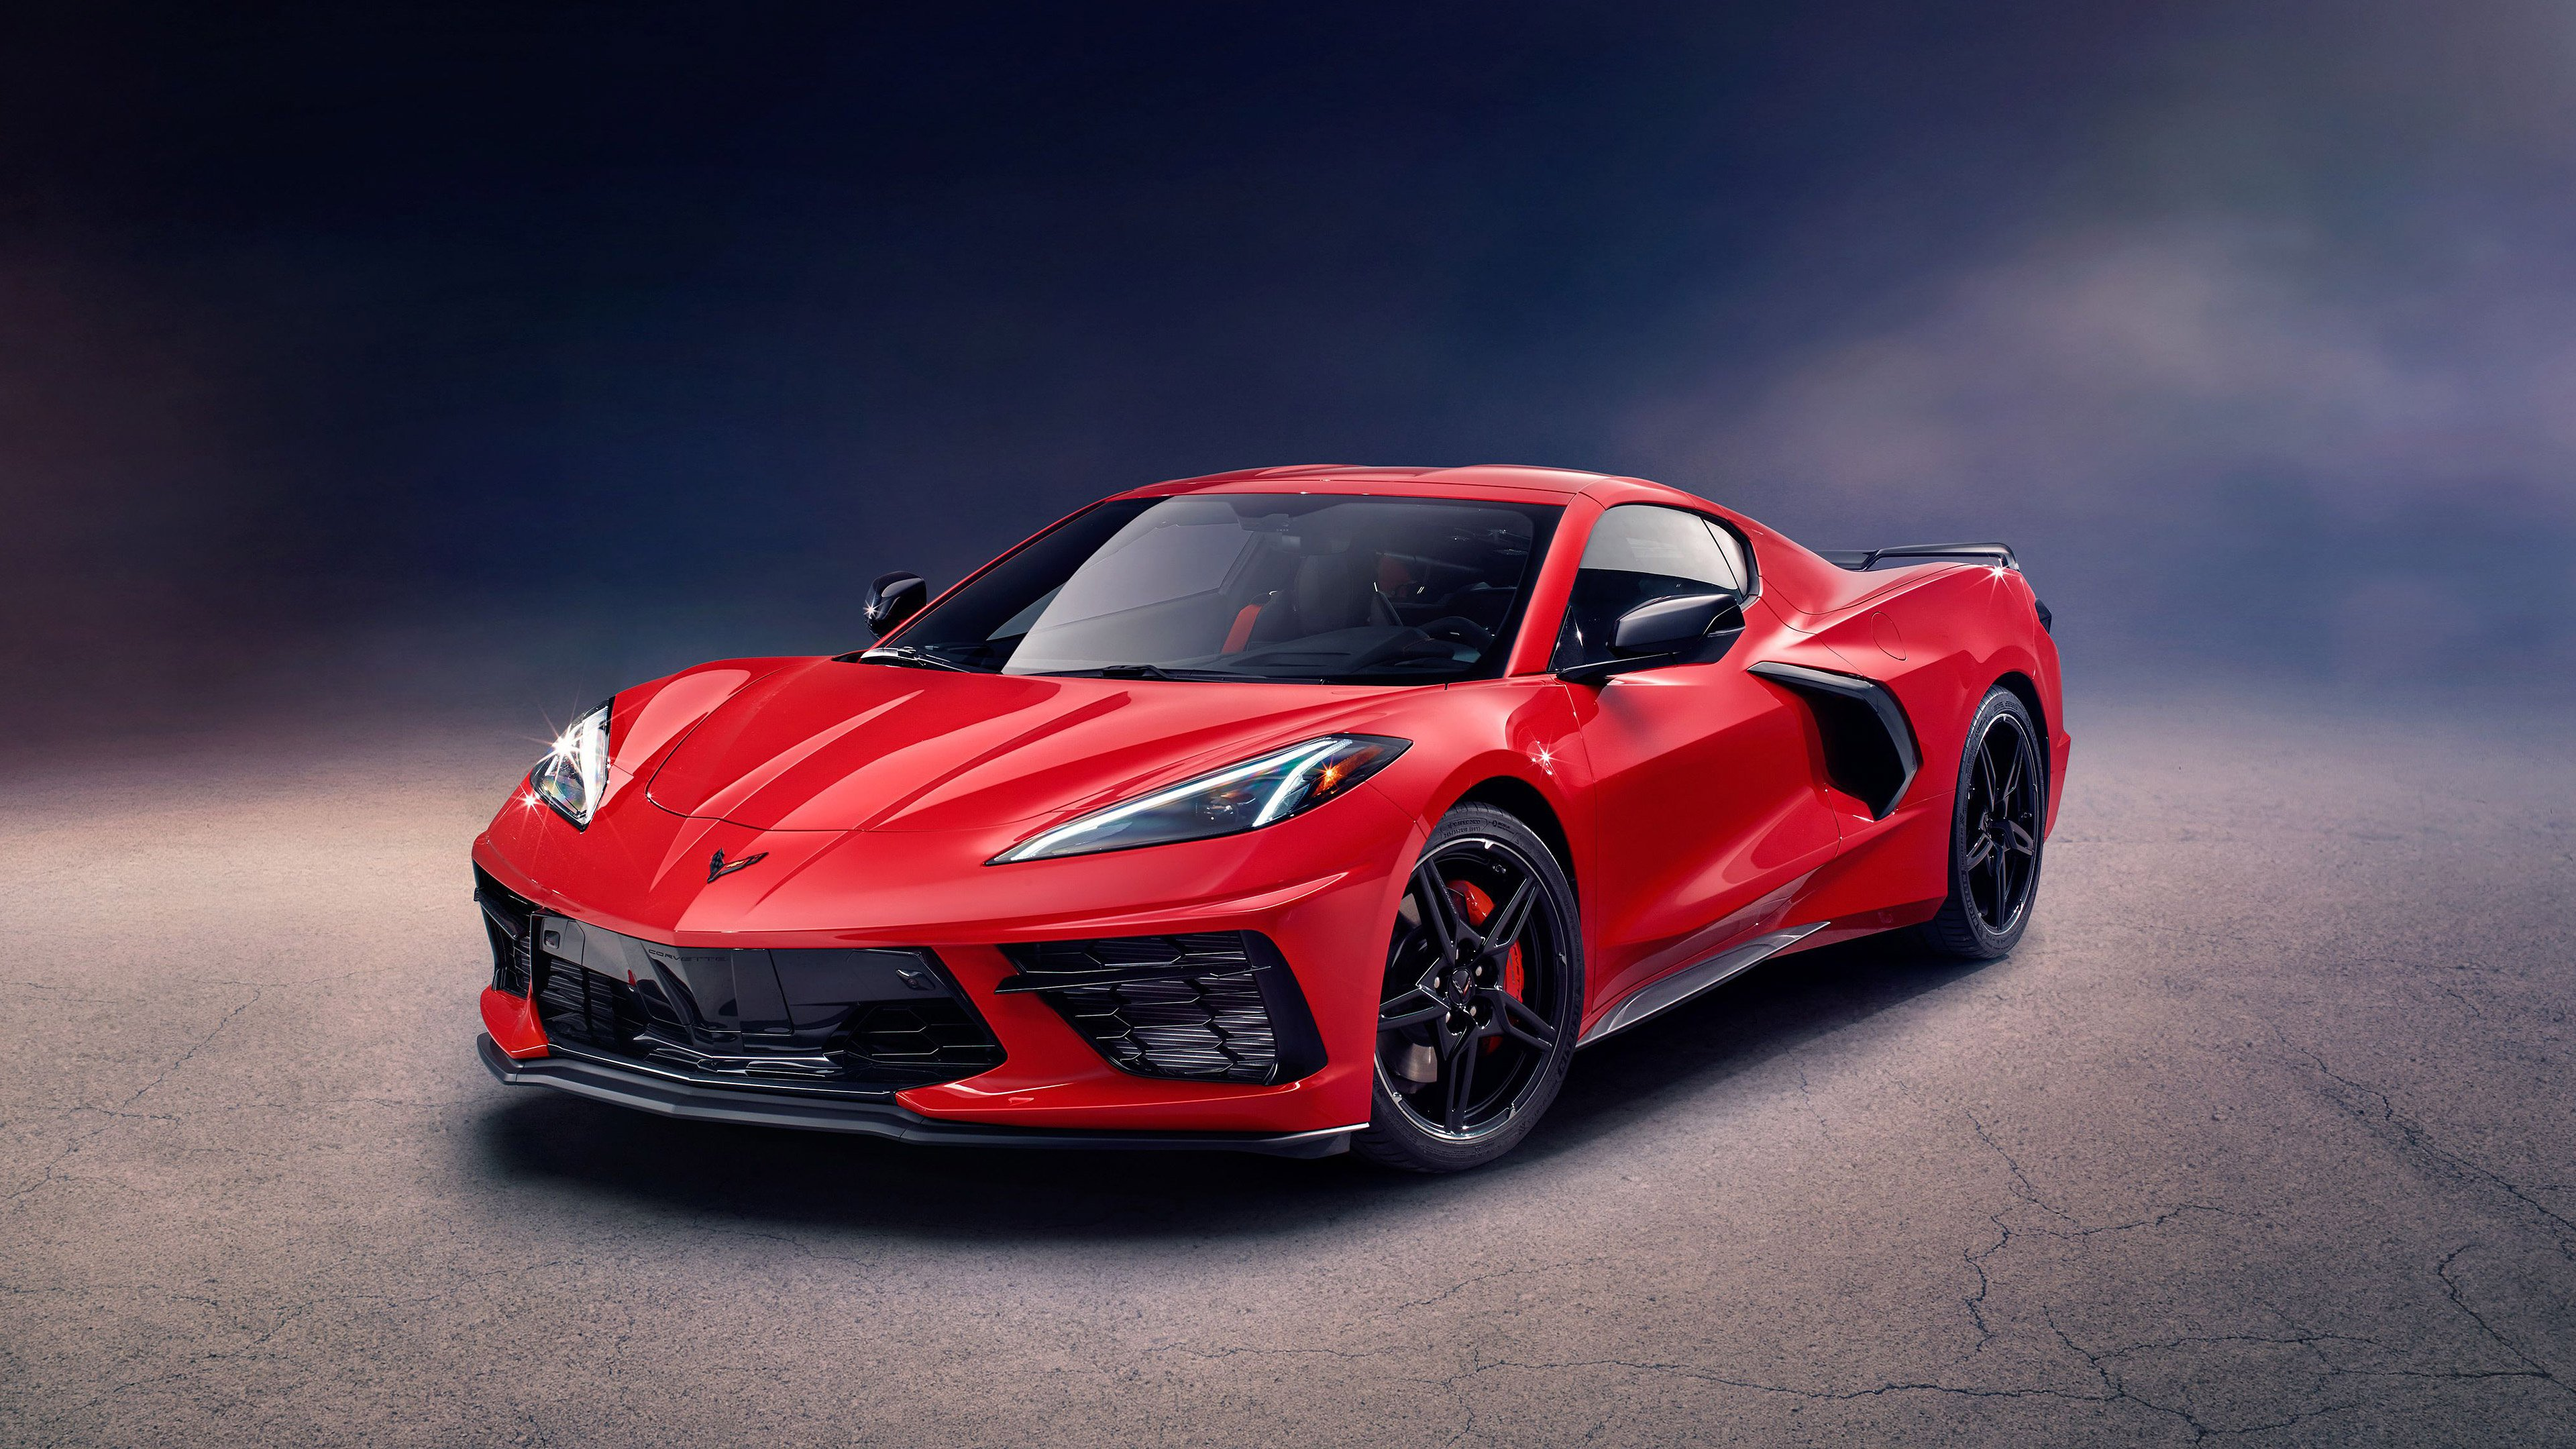 2020 Corvette Wallpapers - Wallpaper Cave